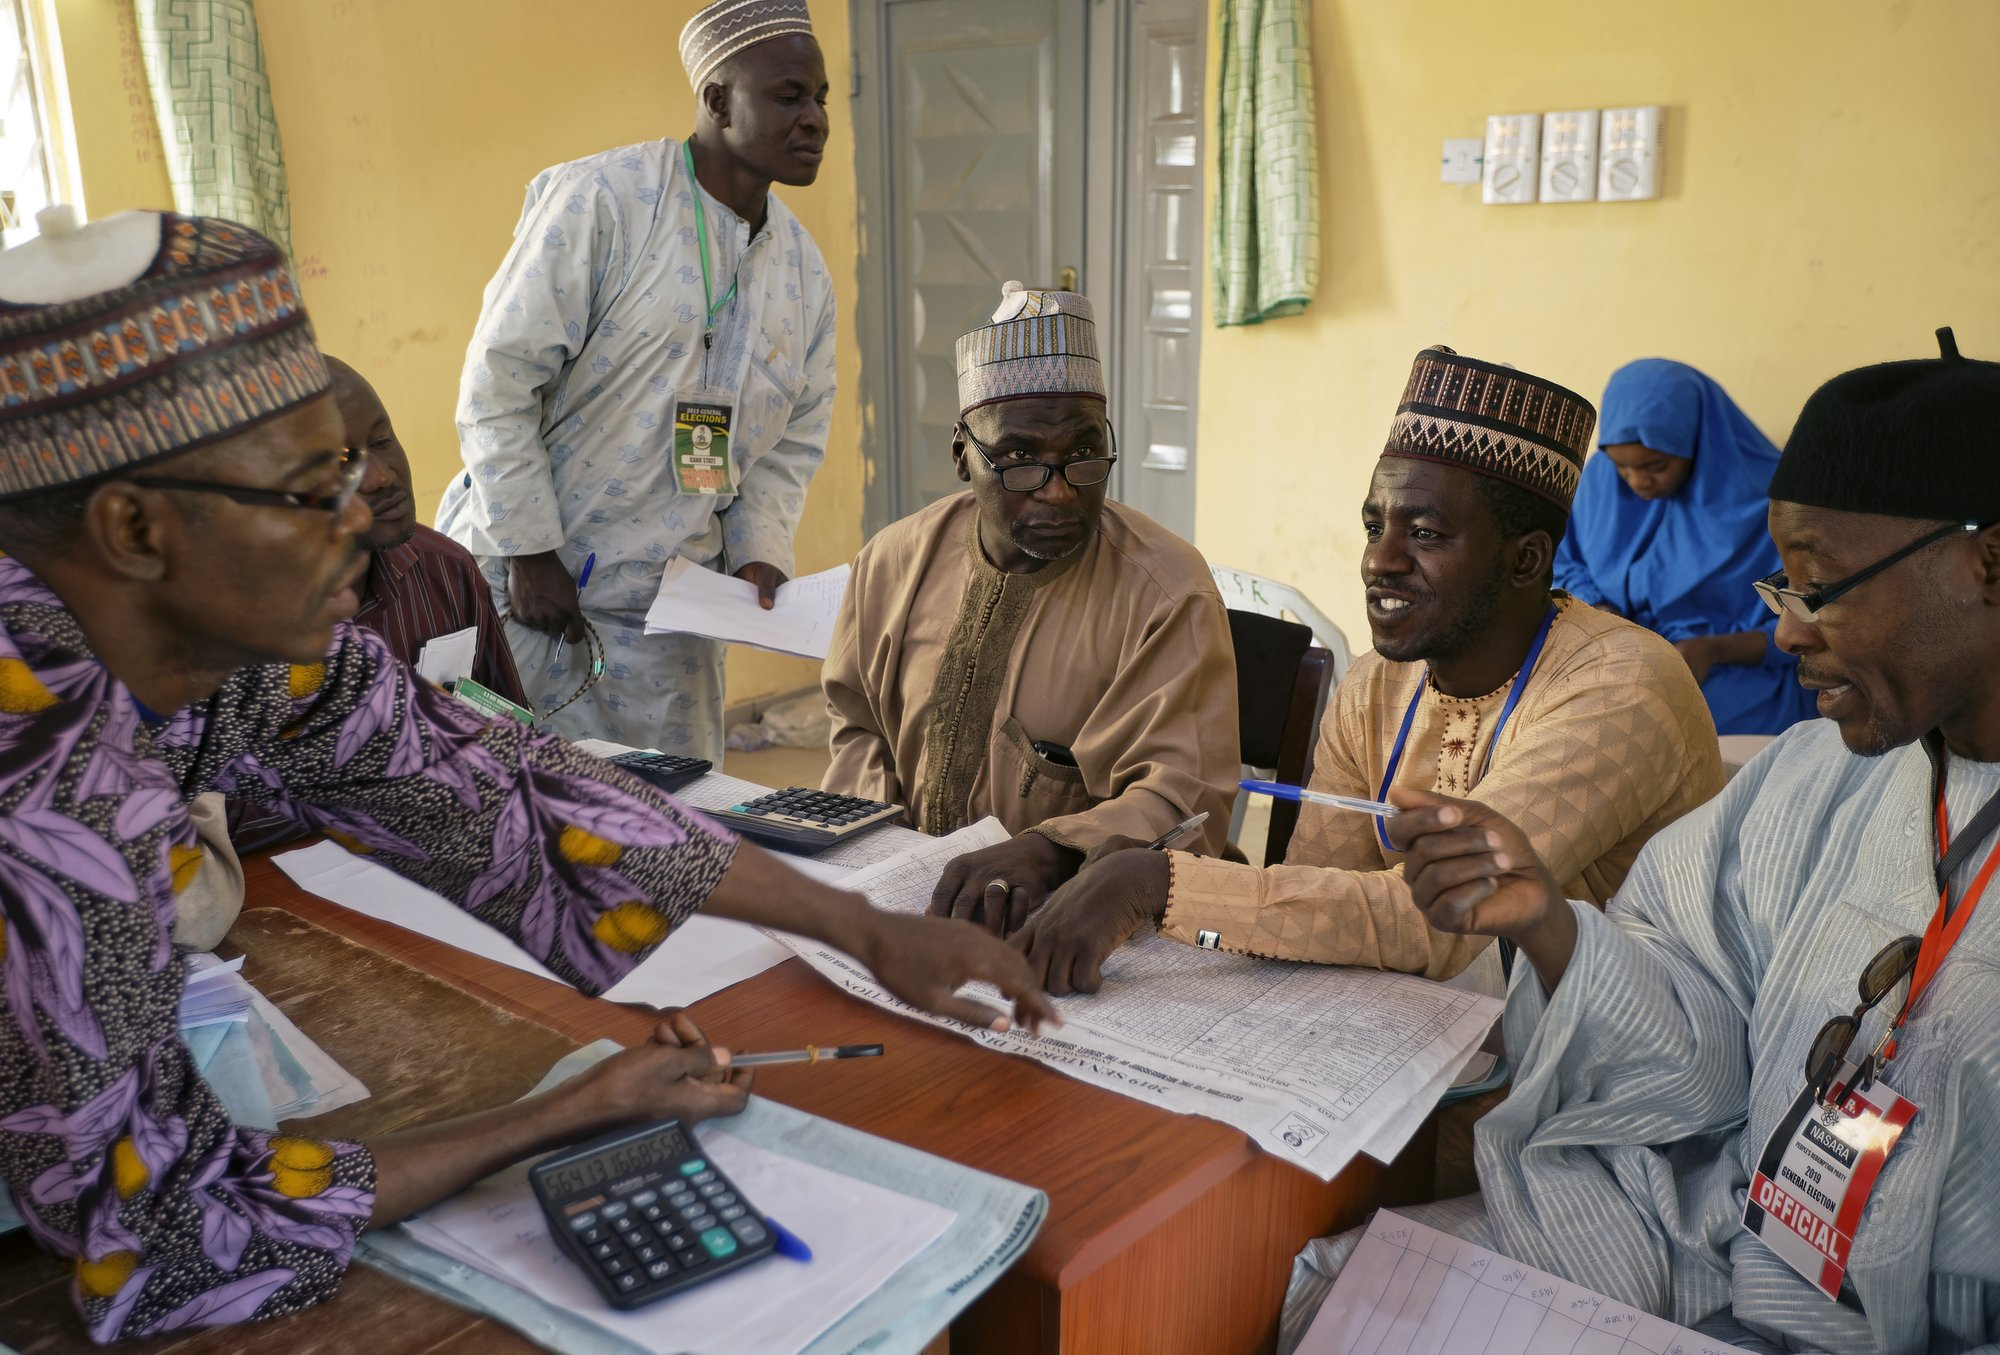 AP Explains: What to watch as Nigeria awaits vote results